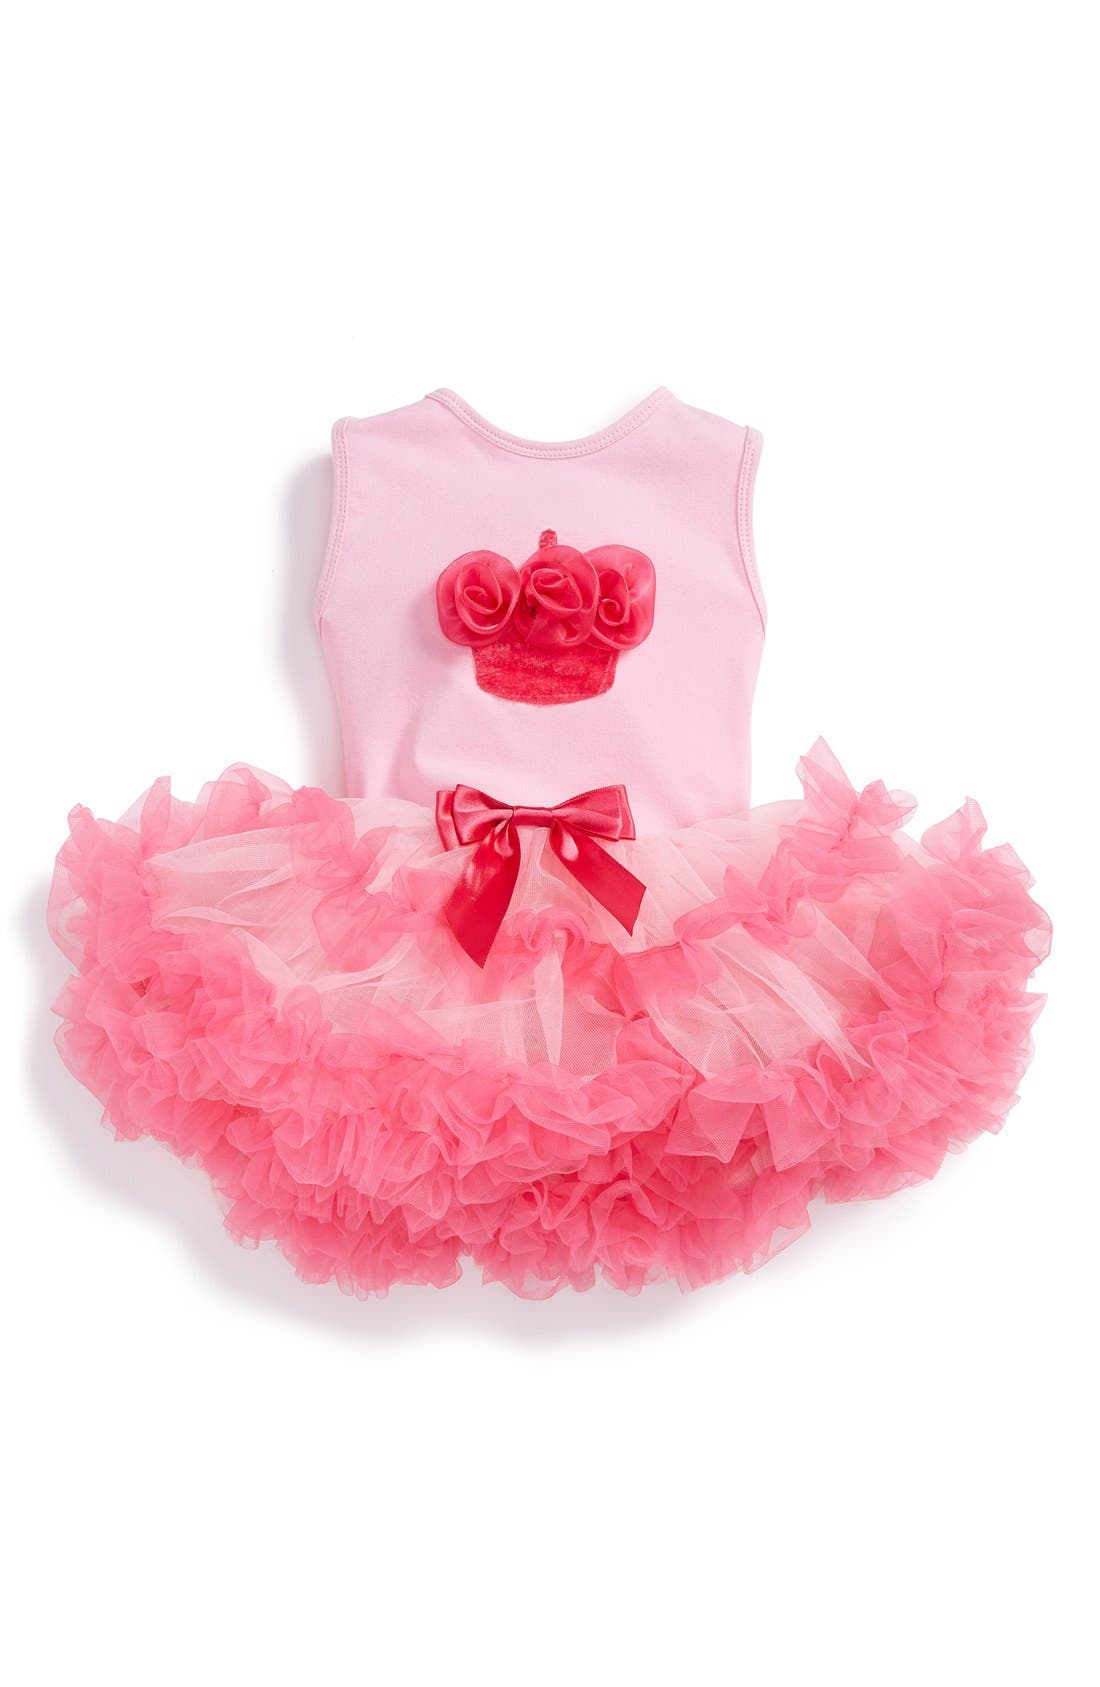 POPATU 'Birthday' Sleeveless Tutu Dress